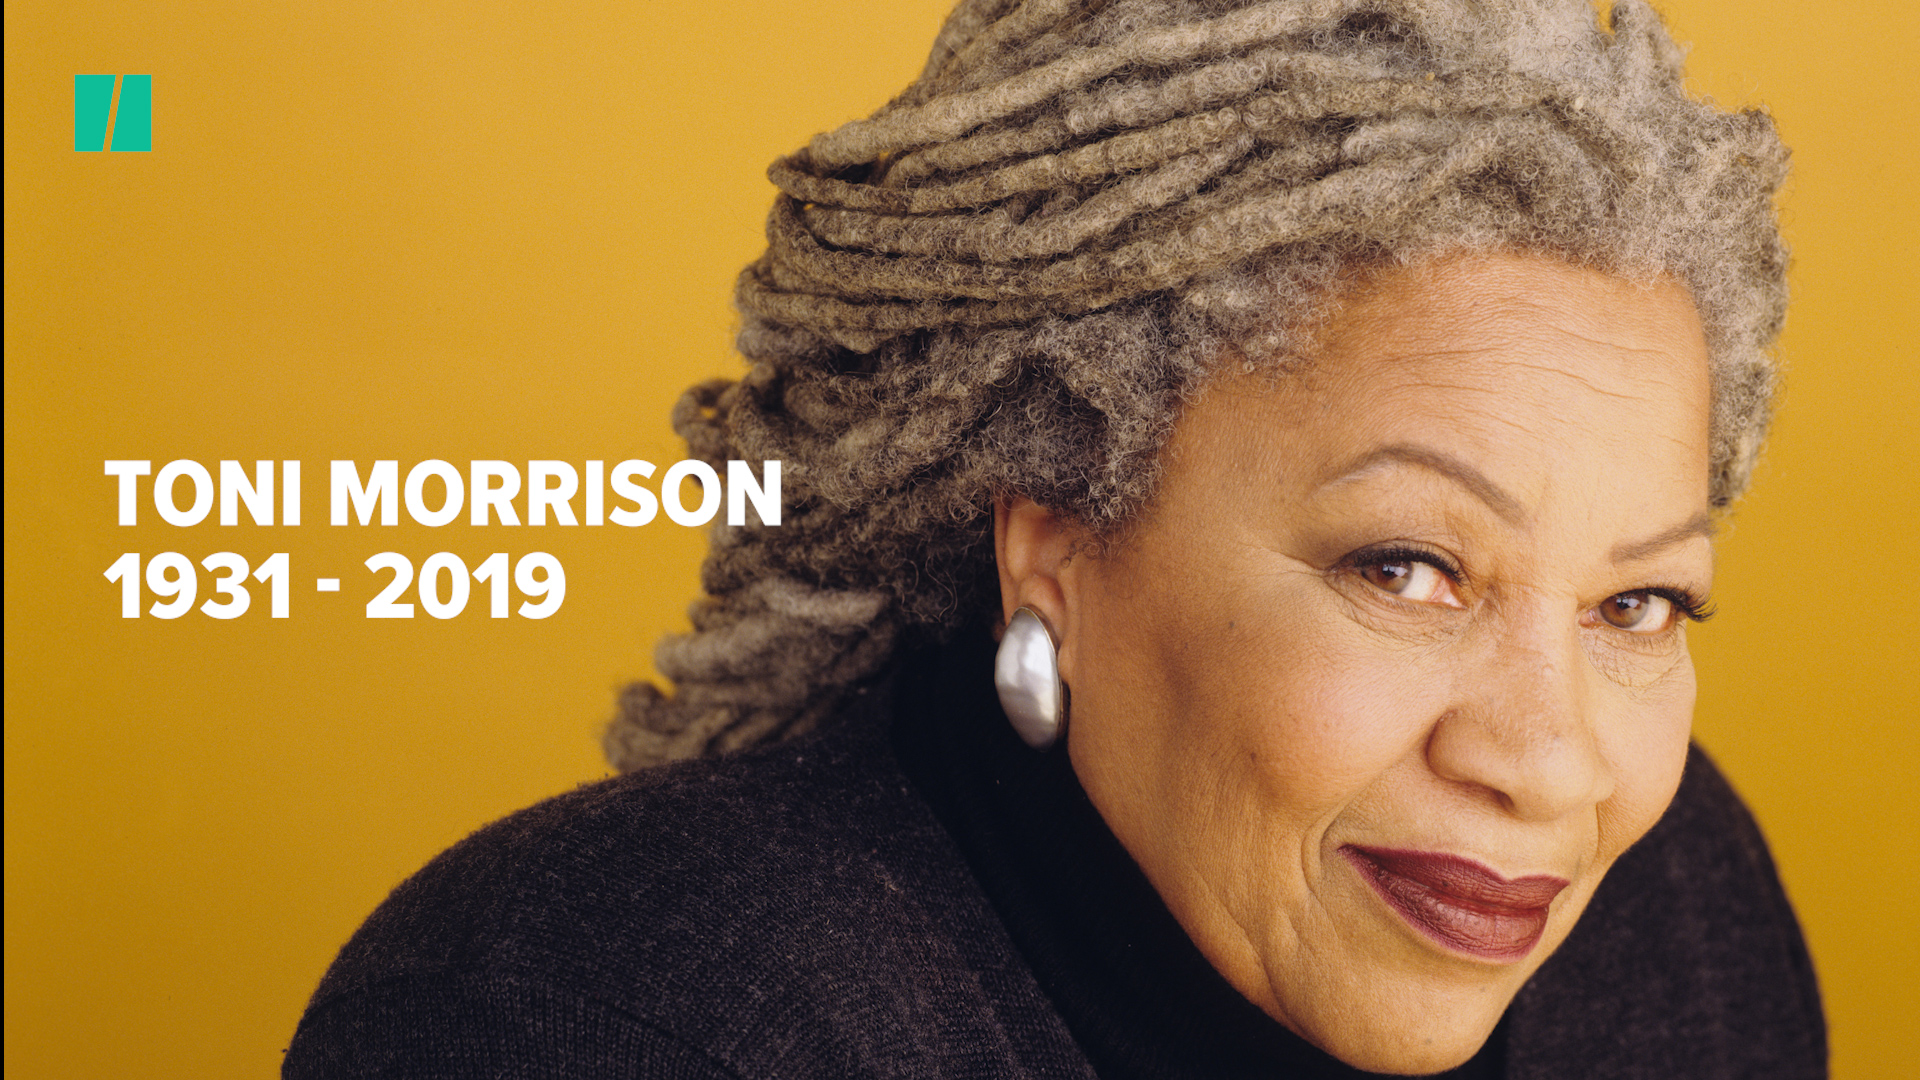 8 Indispensable Pieces Of Work And Career Advice From Toni Morrison